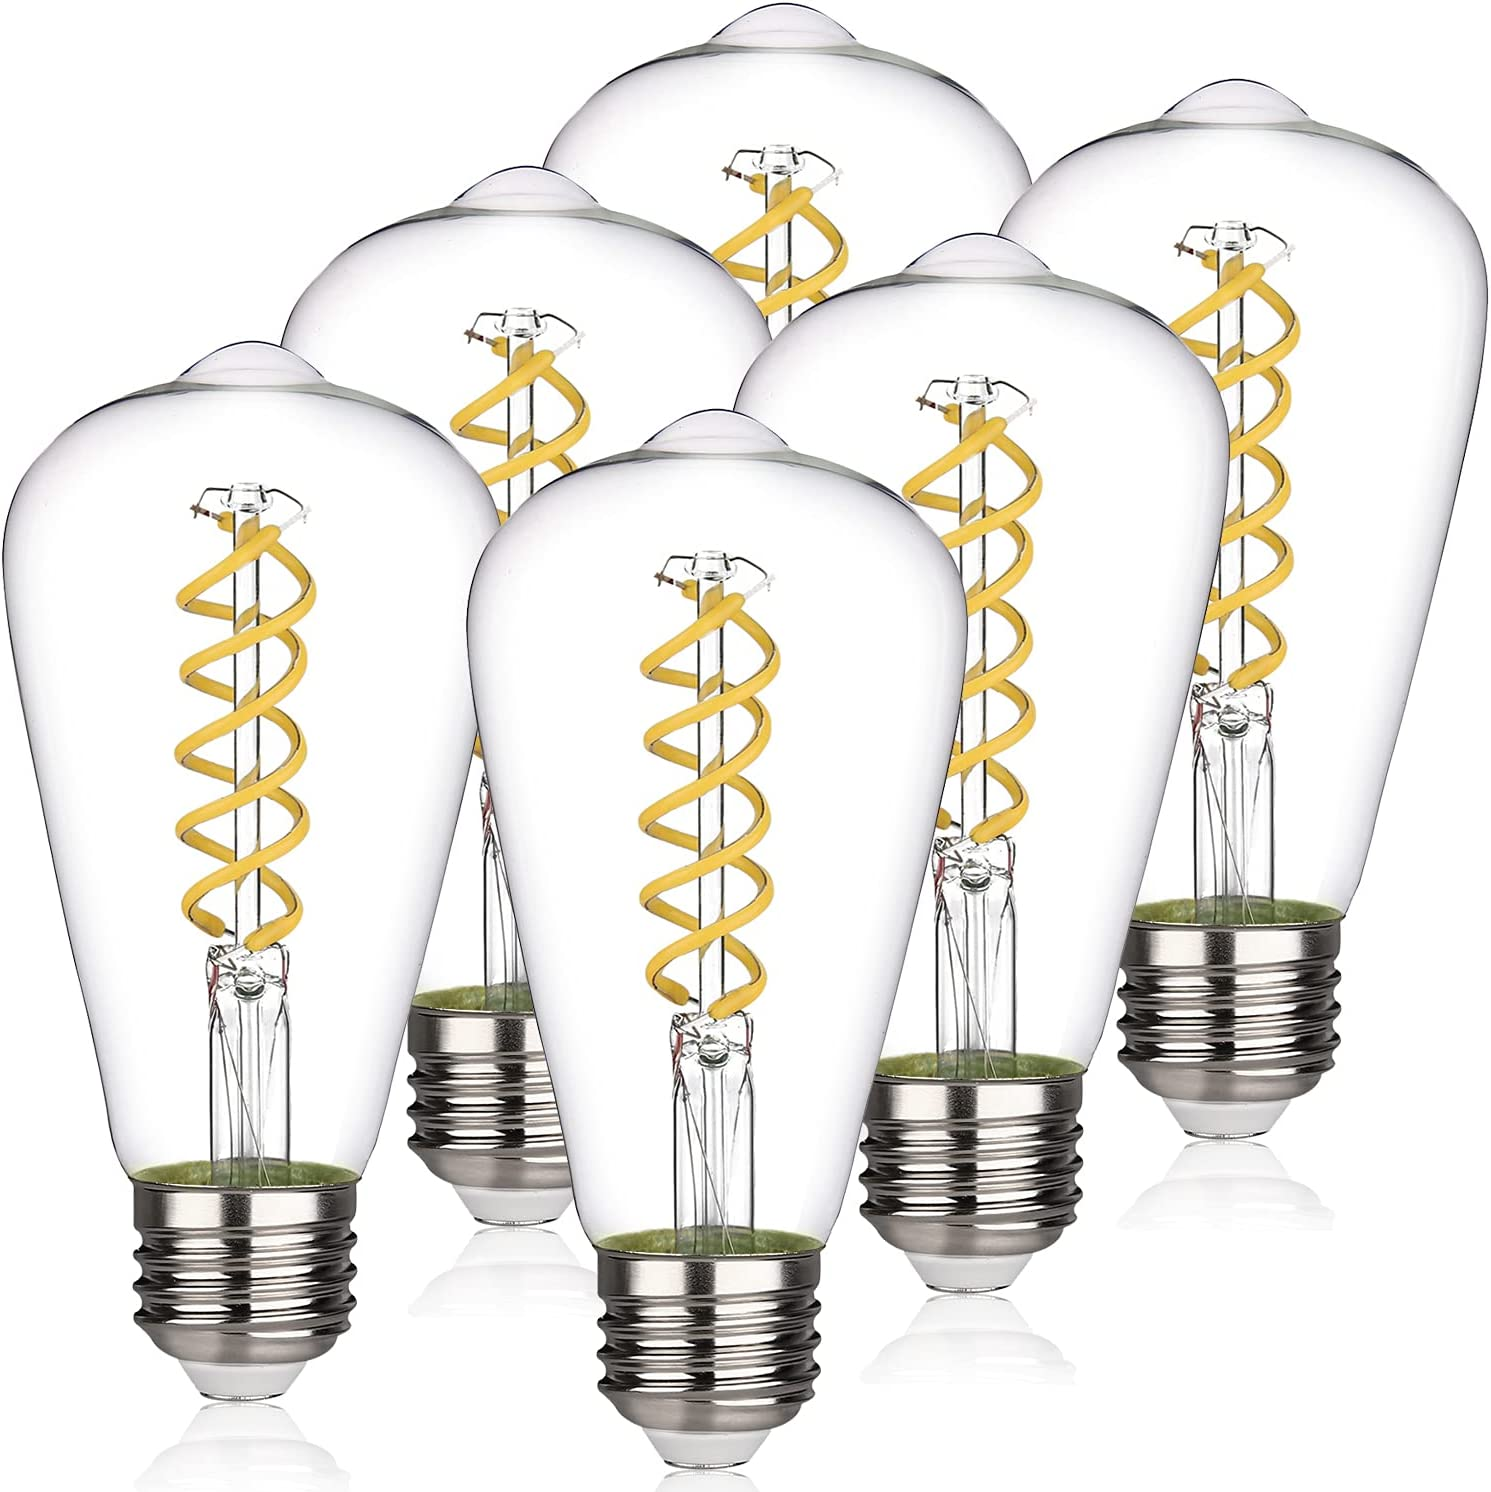 RuiAoTD ST58 (ST19) Vintage Edison LED Bulb 6W Equivalent 60W Dimmable Nature Daylight 4000K 600lm Antique Flexible Spiral LED Filament Light Bulb E26 Base Clear Glass for Home, Bedroom, Office 6 Pack